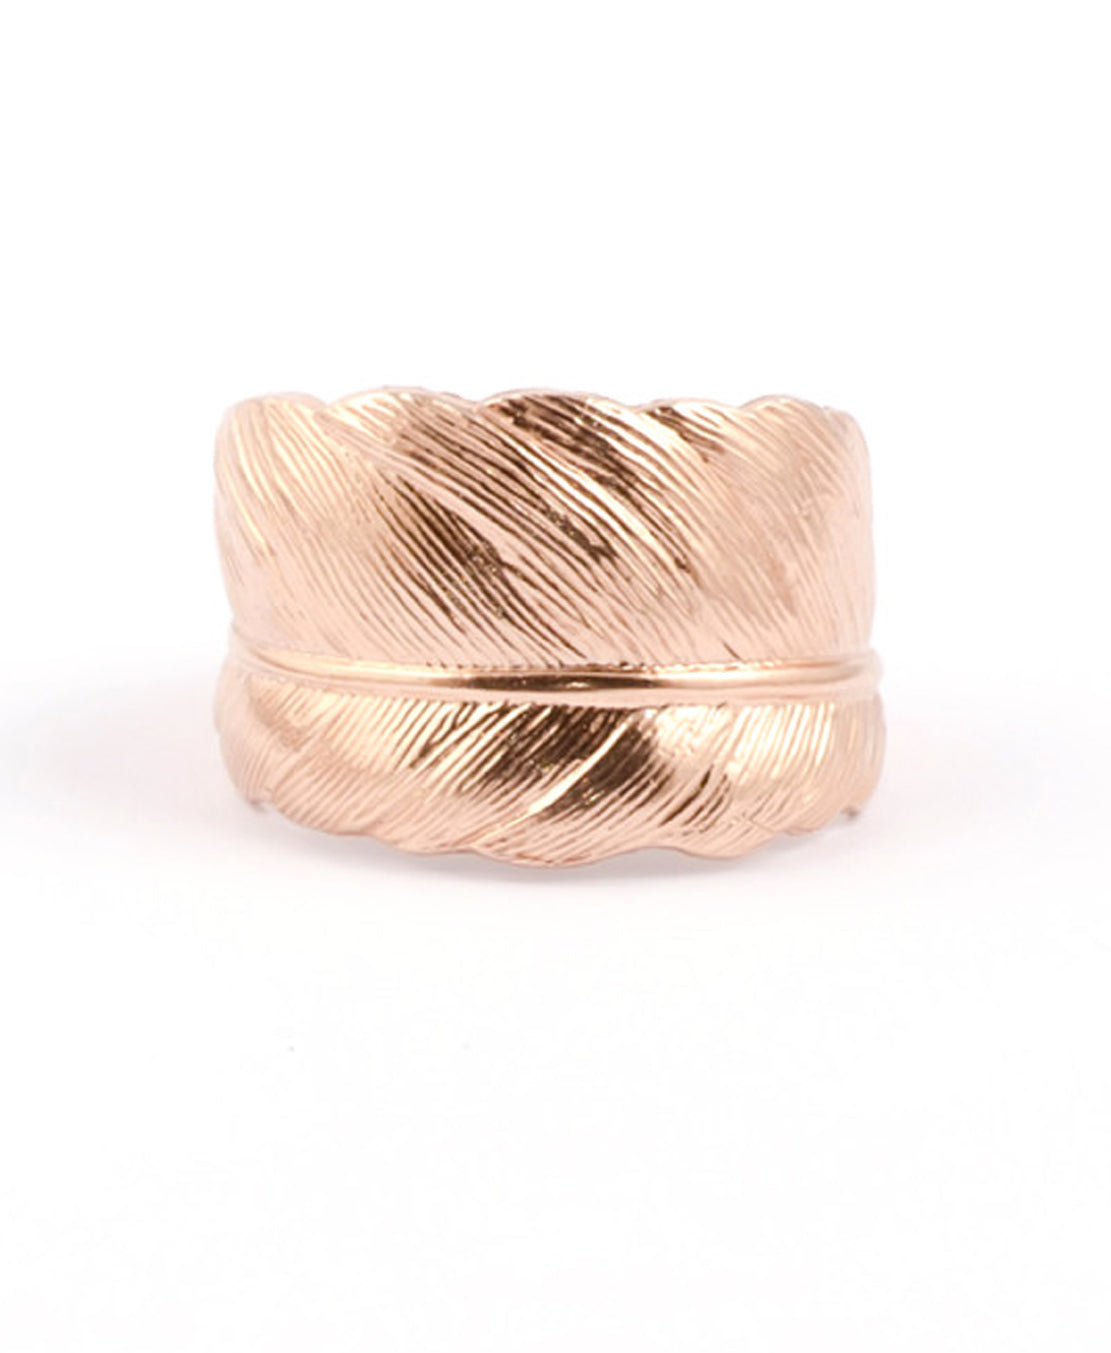 Rose Gold Feather Ring 18ct : Take Flight - IndependentBoutique.com